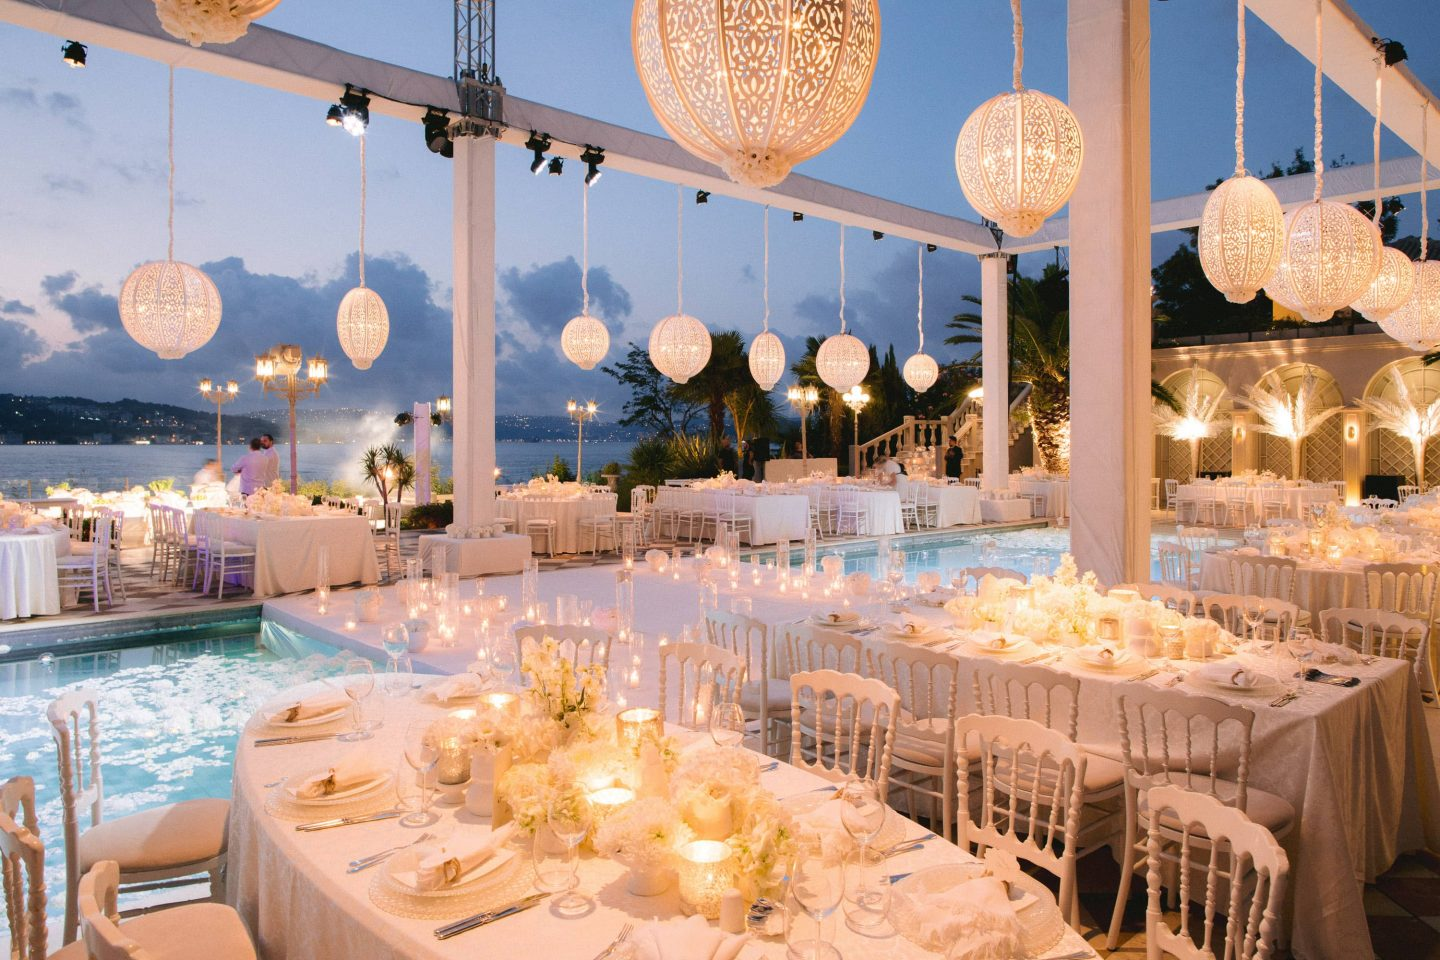 Nighttime white party decor at this Istanbul wedding weekend at Four Seasons Bosphorus | Photo by Allan Zepeda